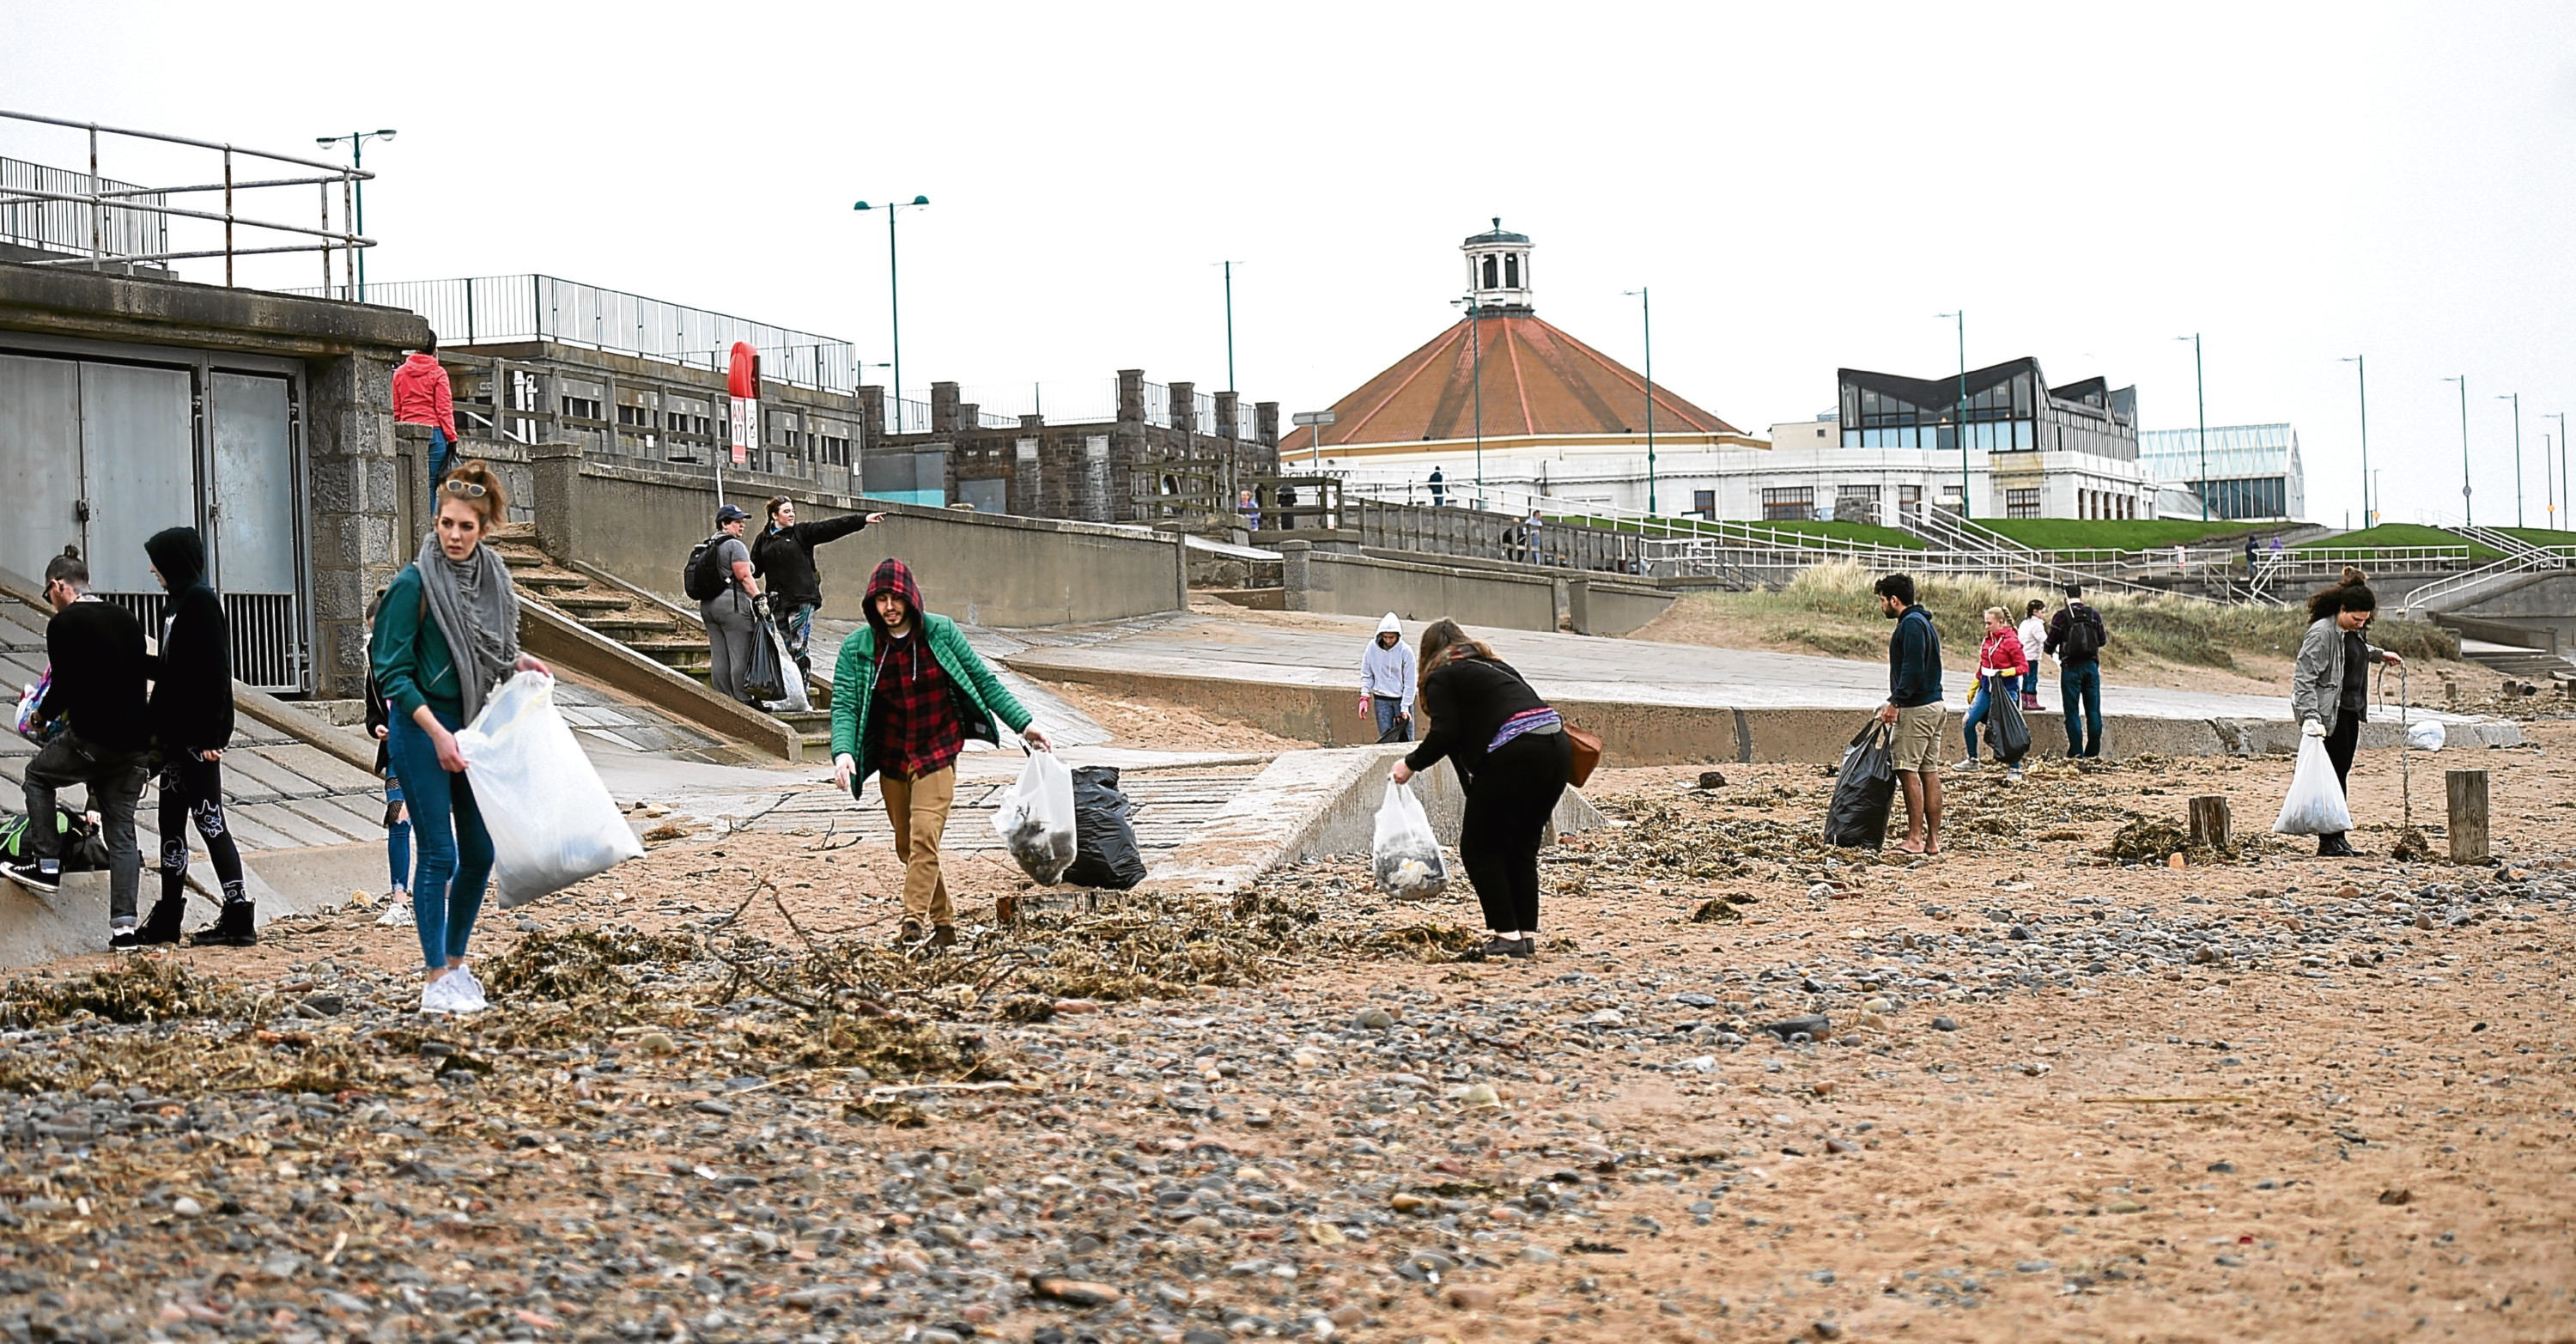 A number of beach cleans have been carried out in Aberdeen over the past few months.